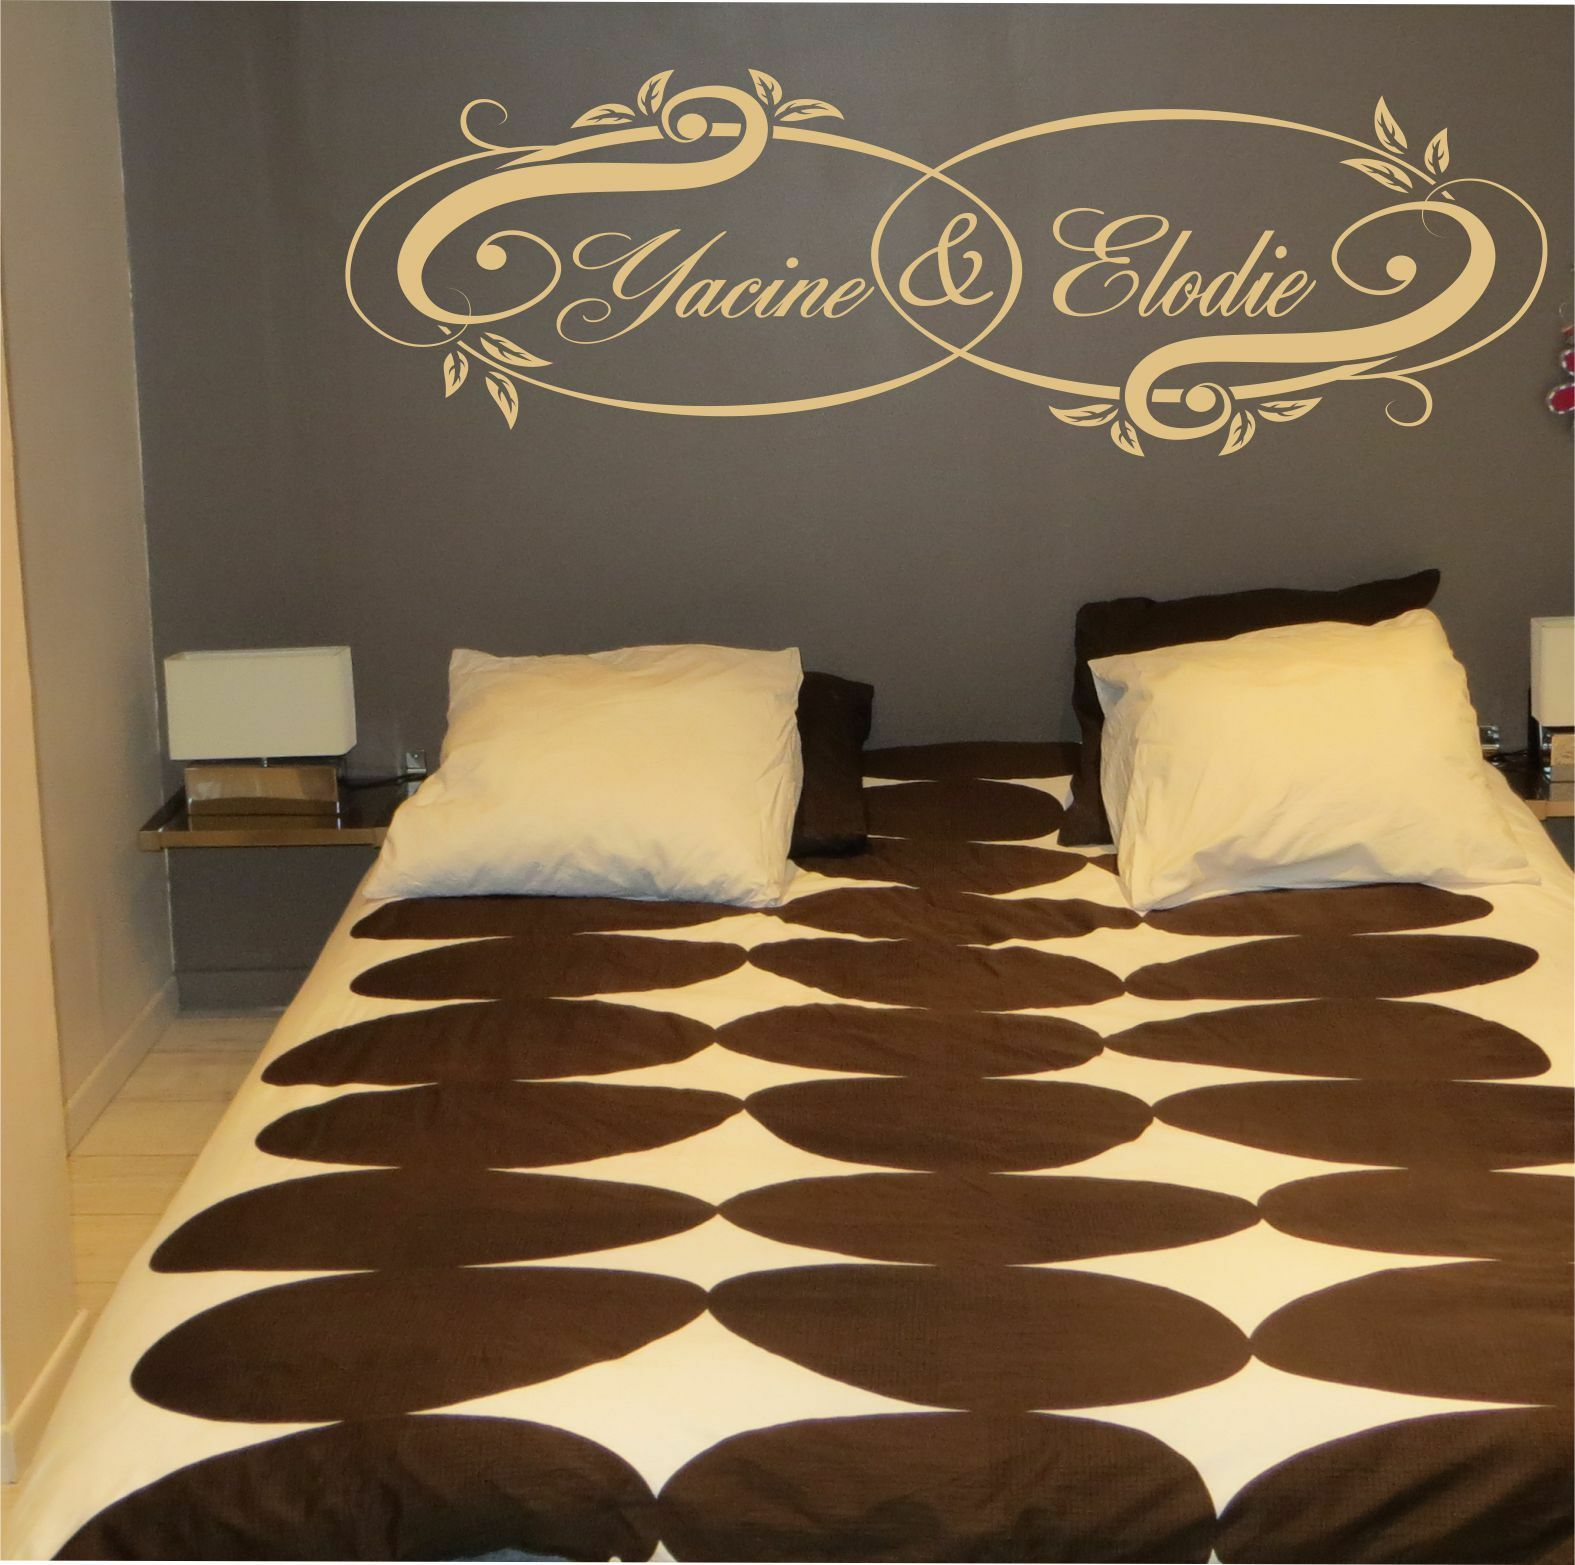 stickers personnalis pr noms couple amour t te de lit chambre double retro eur 2 00. Black Bedroom Furniture Sets. Home Design Ideas